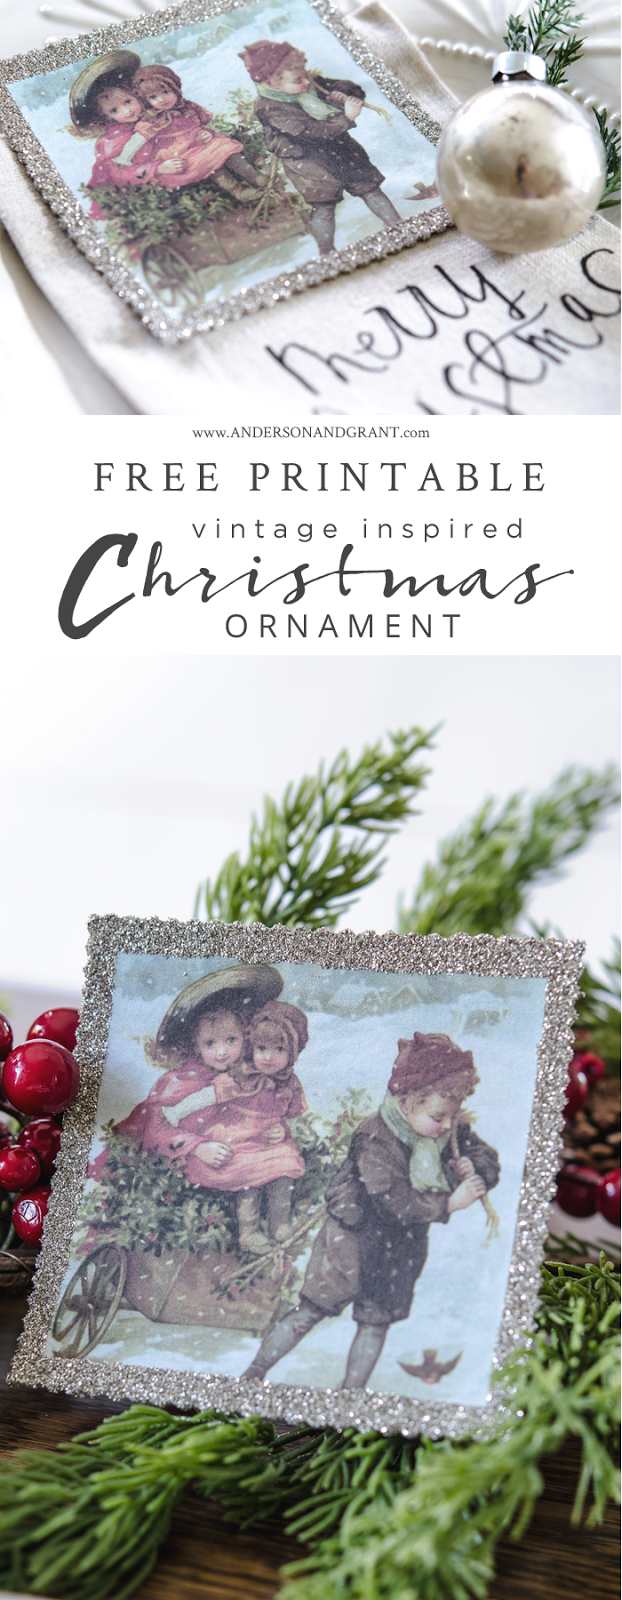 Check out this post for a free printable vintage image to create this festive holiday ornament.  |  www.andersonandgrant.com